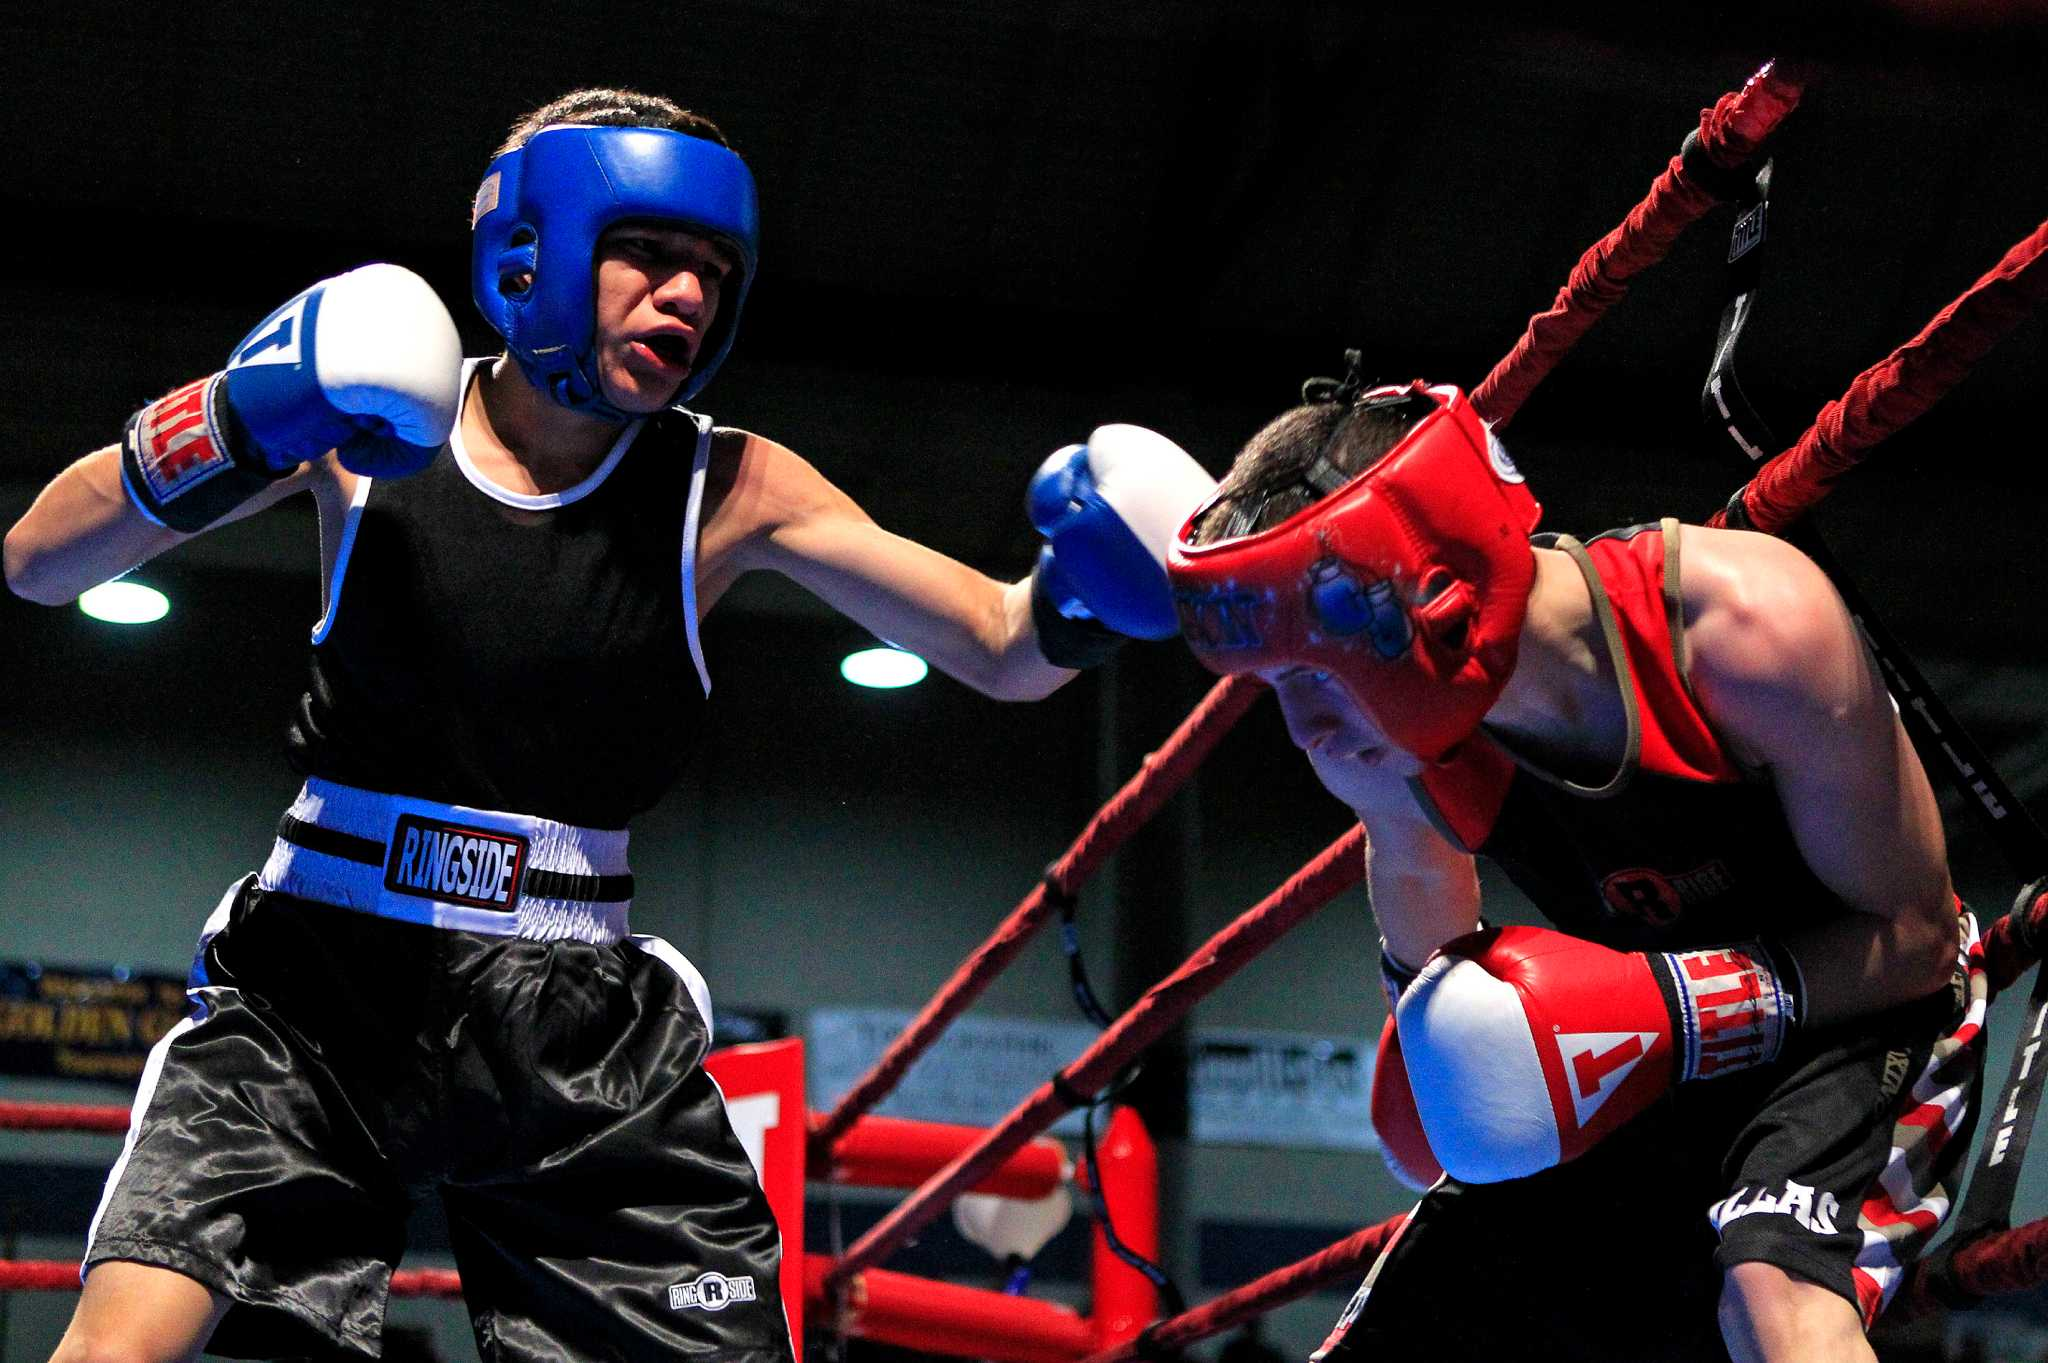 South Texans Roll At State Golden Gloves San Antonio